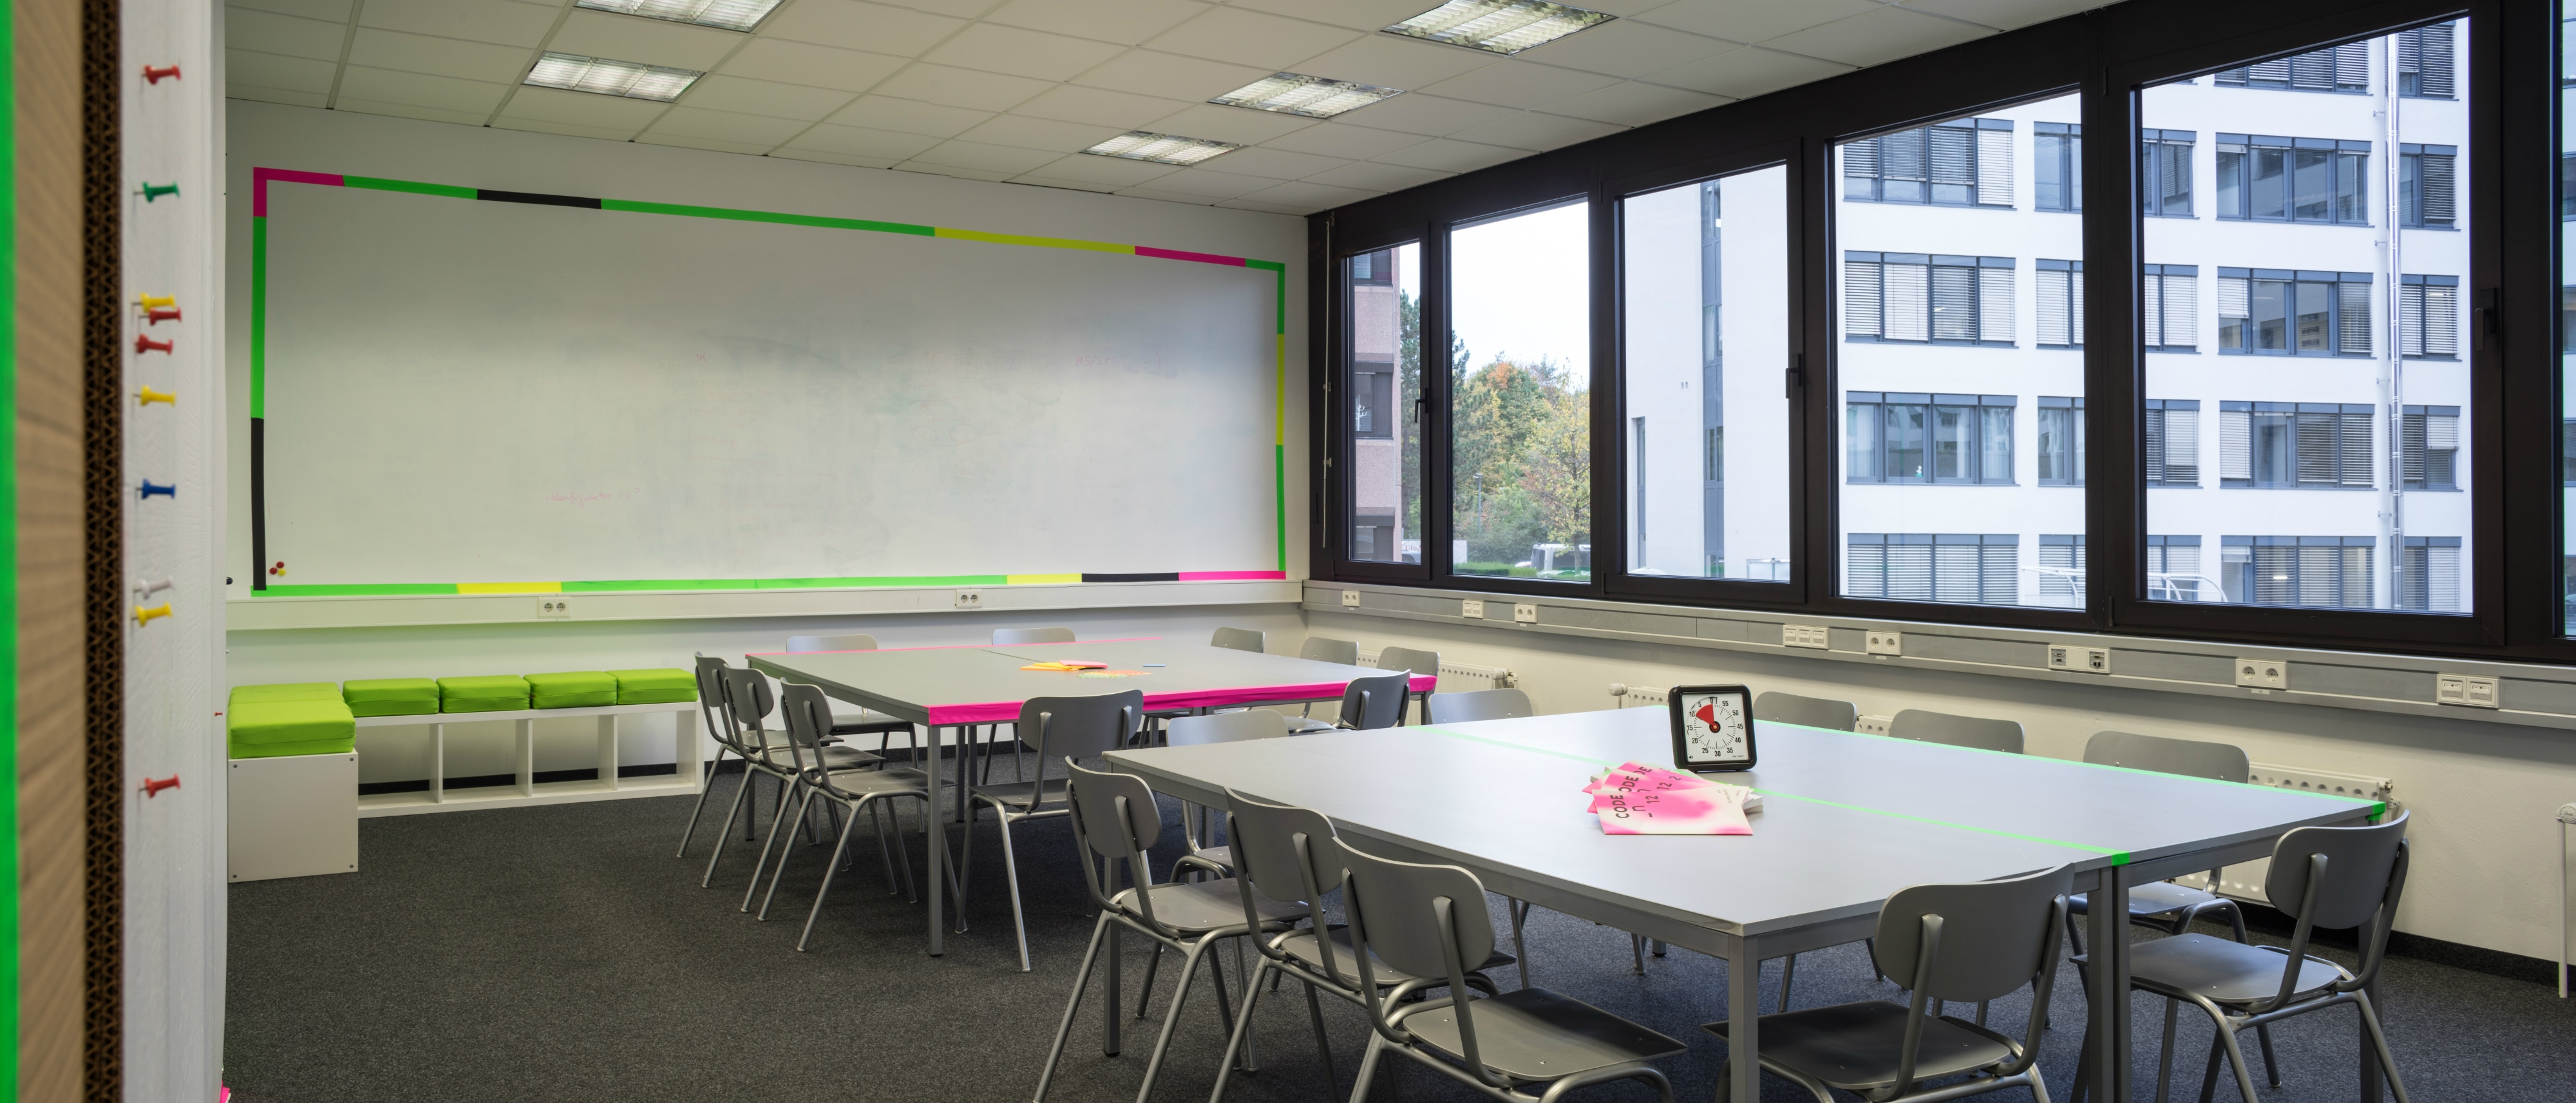 CODE_n SPACES Workshop Room 64m2 incl. writable and magnetic wall